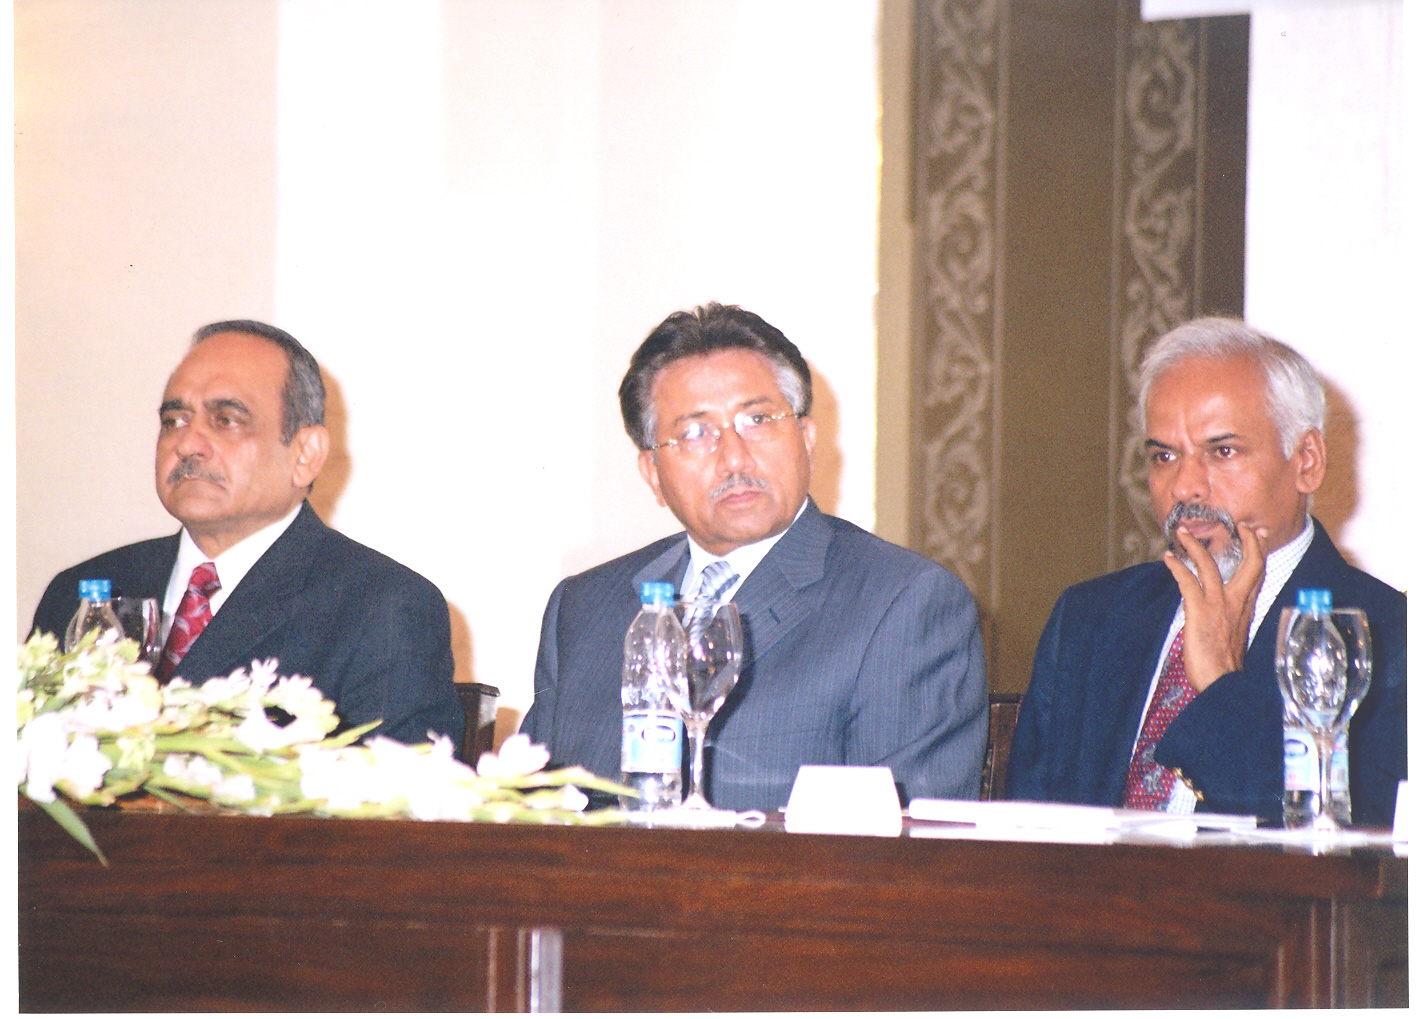 Parvez Butt, Chairman of the Pakistan Atomic Energy Commission - Pervez Musharraf, Pakistan's Presid